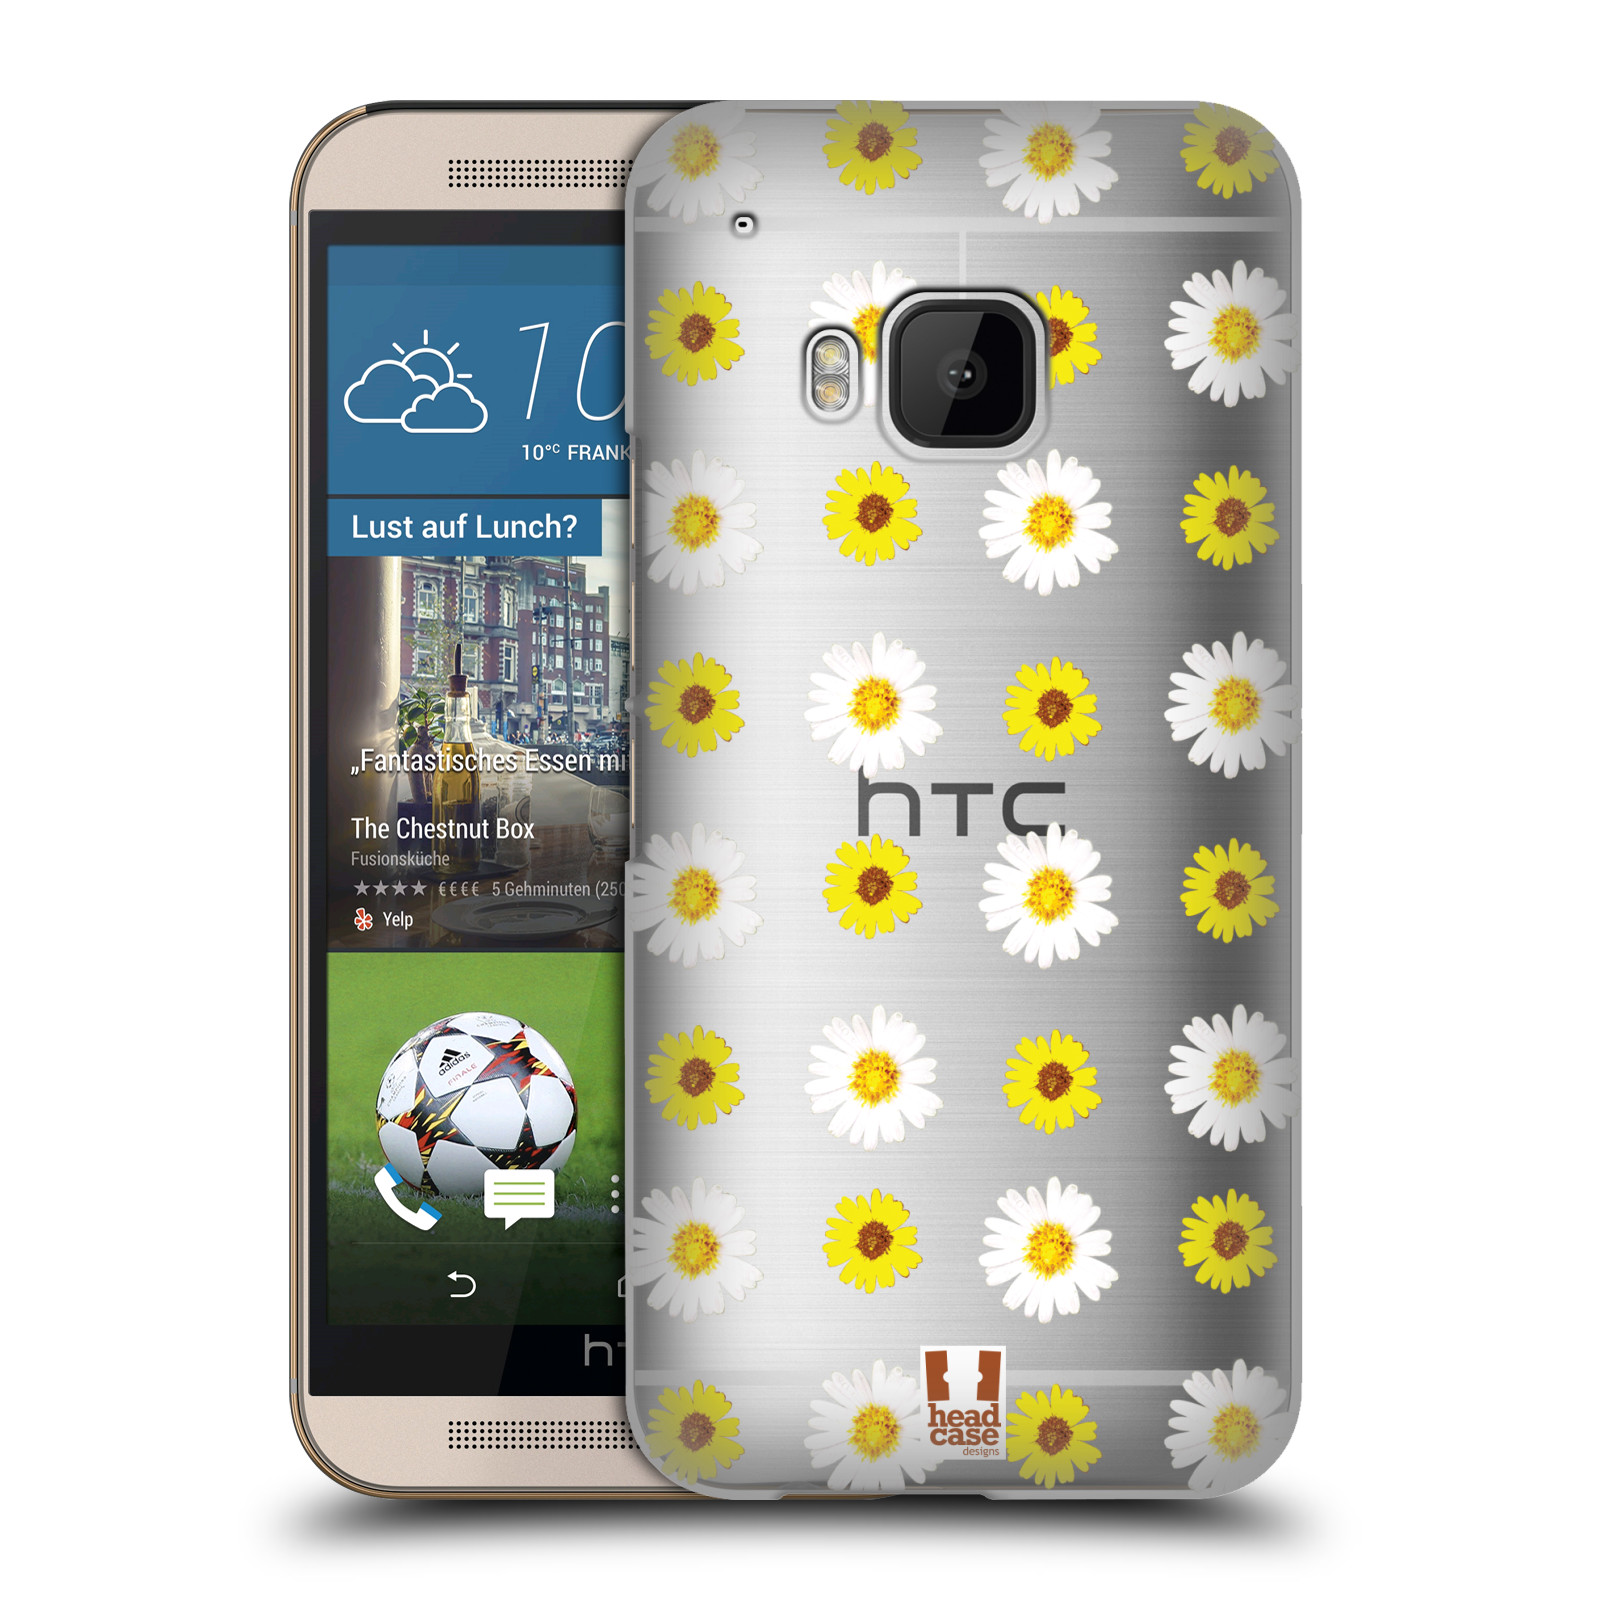 HEAD-CASE-DESIGNS-FLOWER-POWER-HARD-BACK-CASE-FOR-HTC-PHONES-1